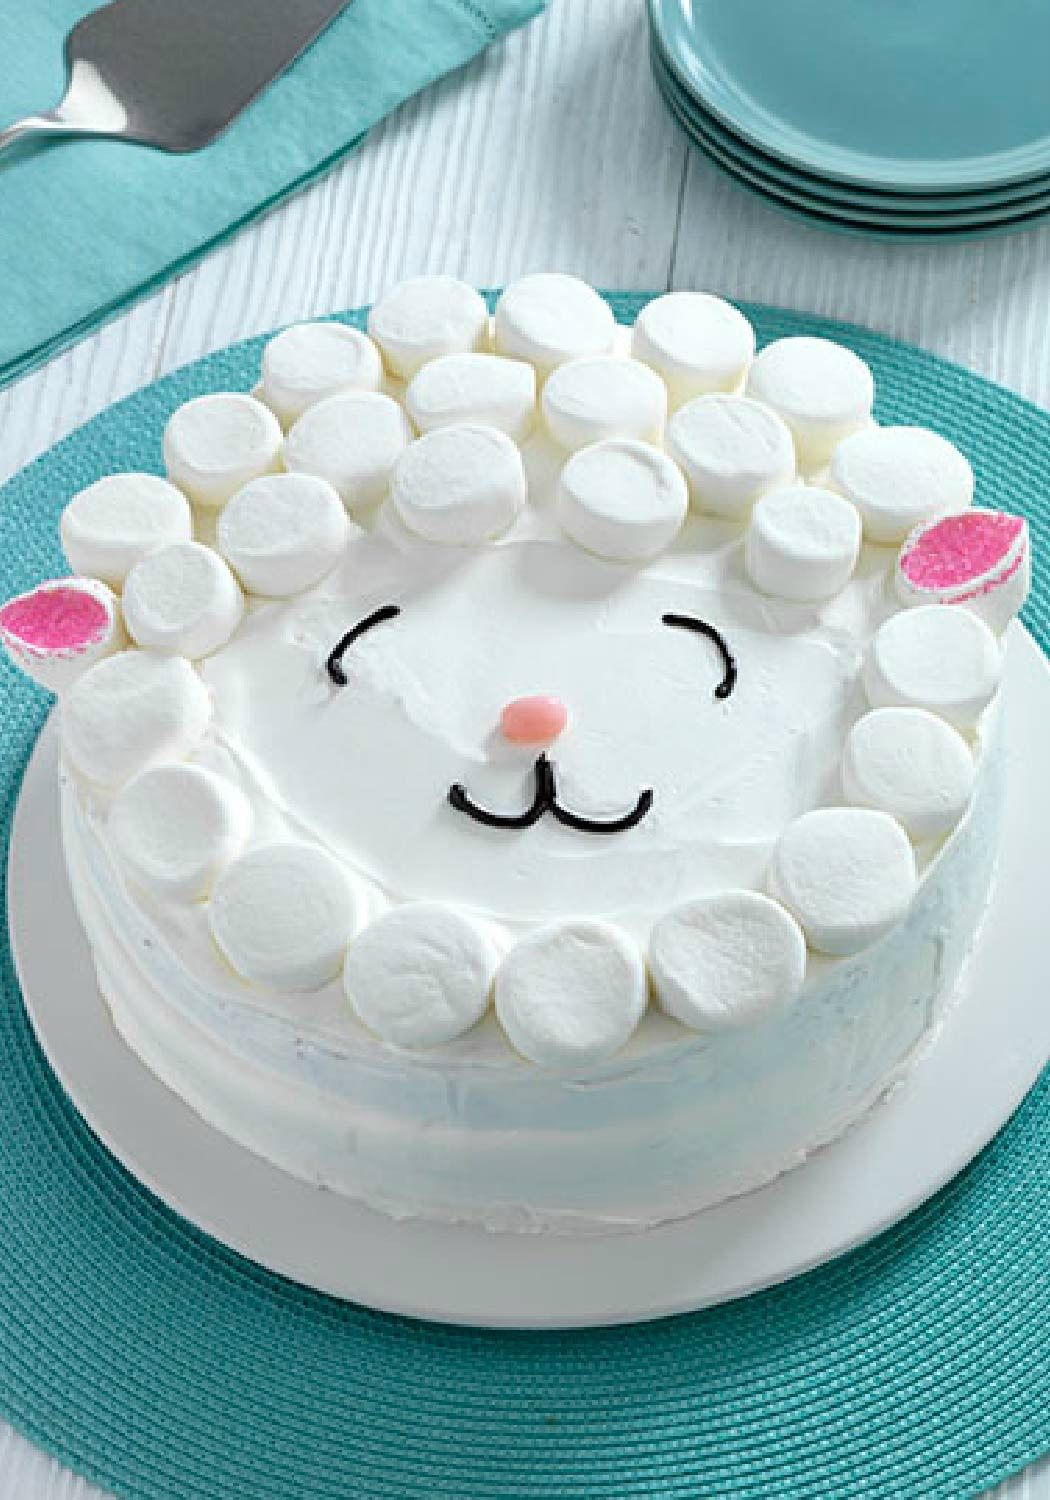 Easy Lamb Cake Theres No Need For A Special Pan To Prepare This Covered In COOL WHIP Whipped Topping And Decorated With JET PUFFED